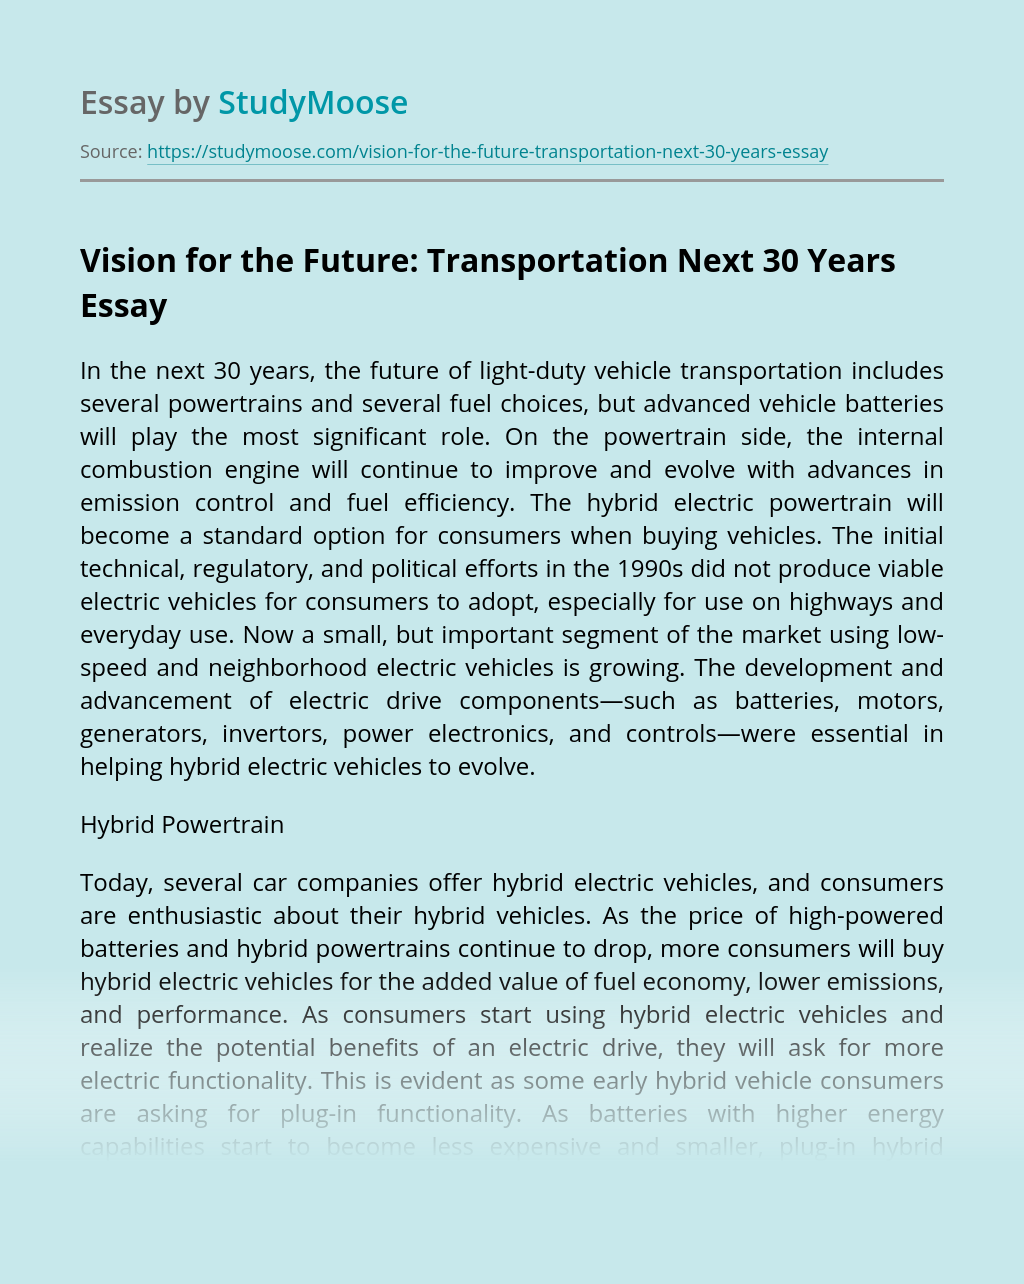 Vision for the Future: Transportation Next 30 Years